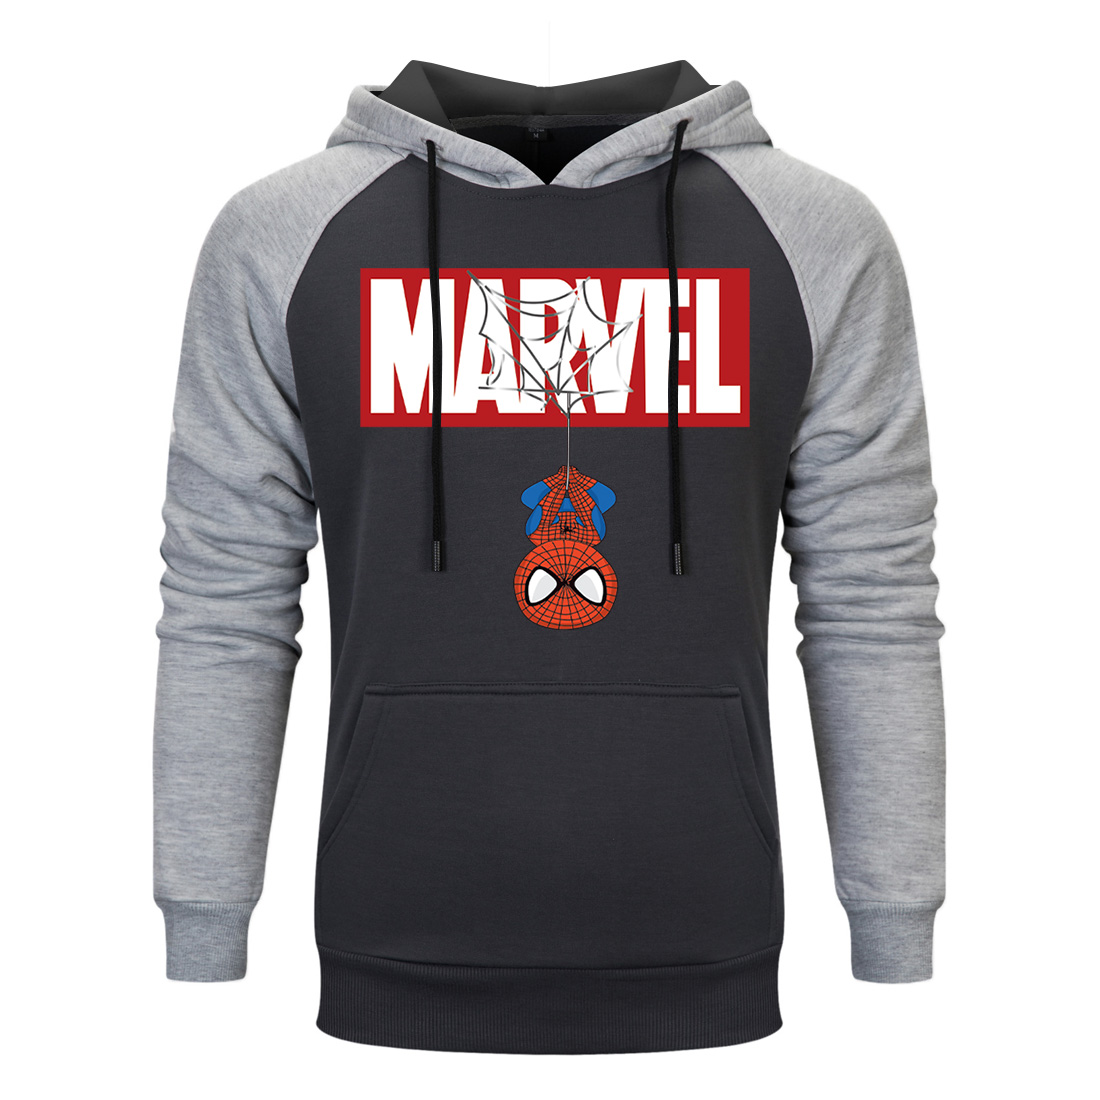 Autumn Spiderman Brand Sweatshirts Men High Quality MARVEL Letter Printing New 2019 Fashion Mens Hoodies Sudaderas Para Hombre